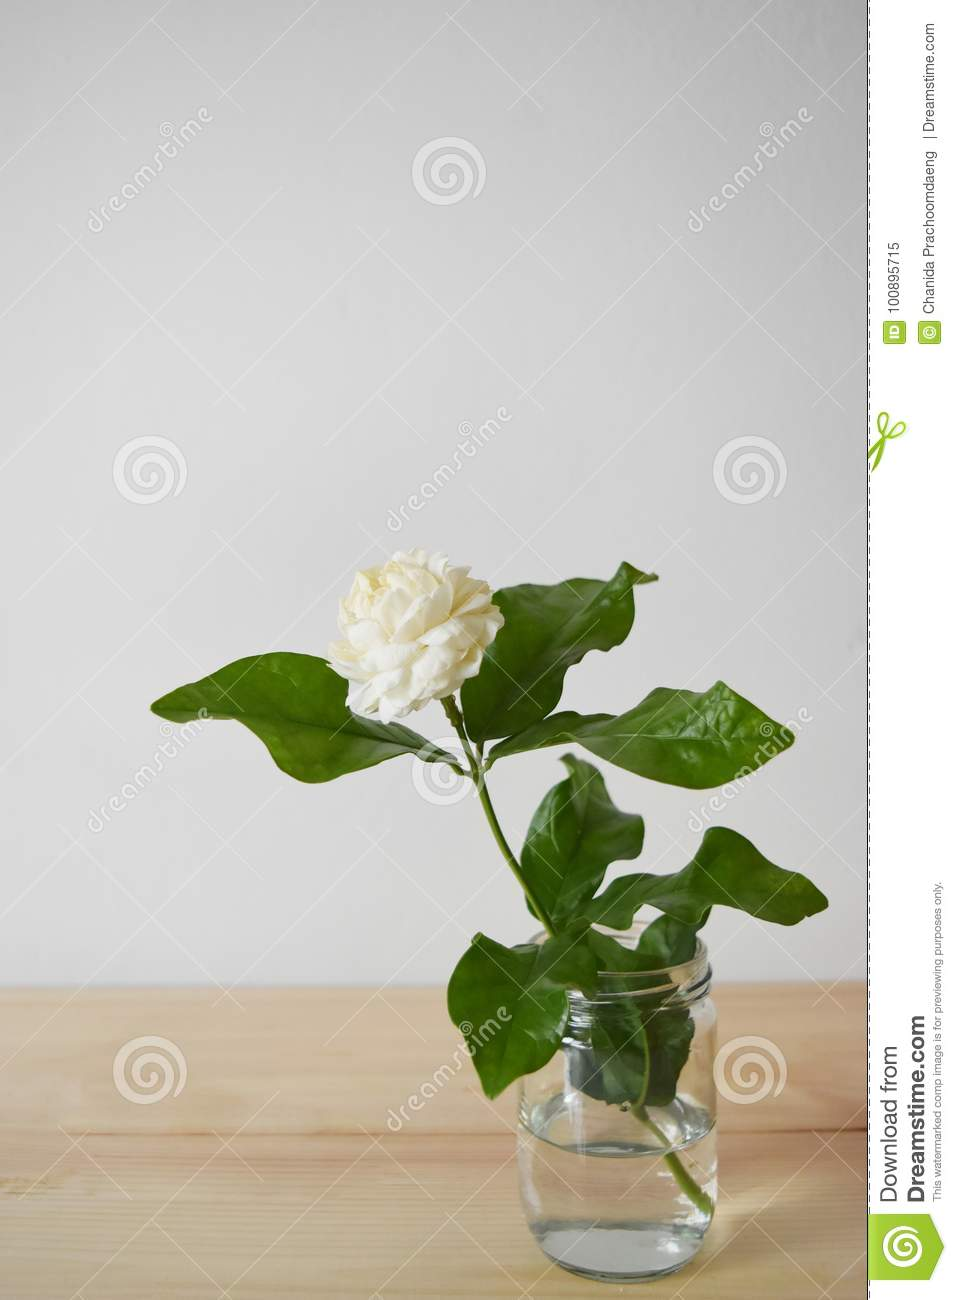 White Flowers In A Glass Vase On A Brown Wood Table Jasminum